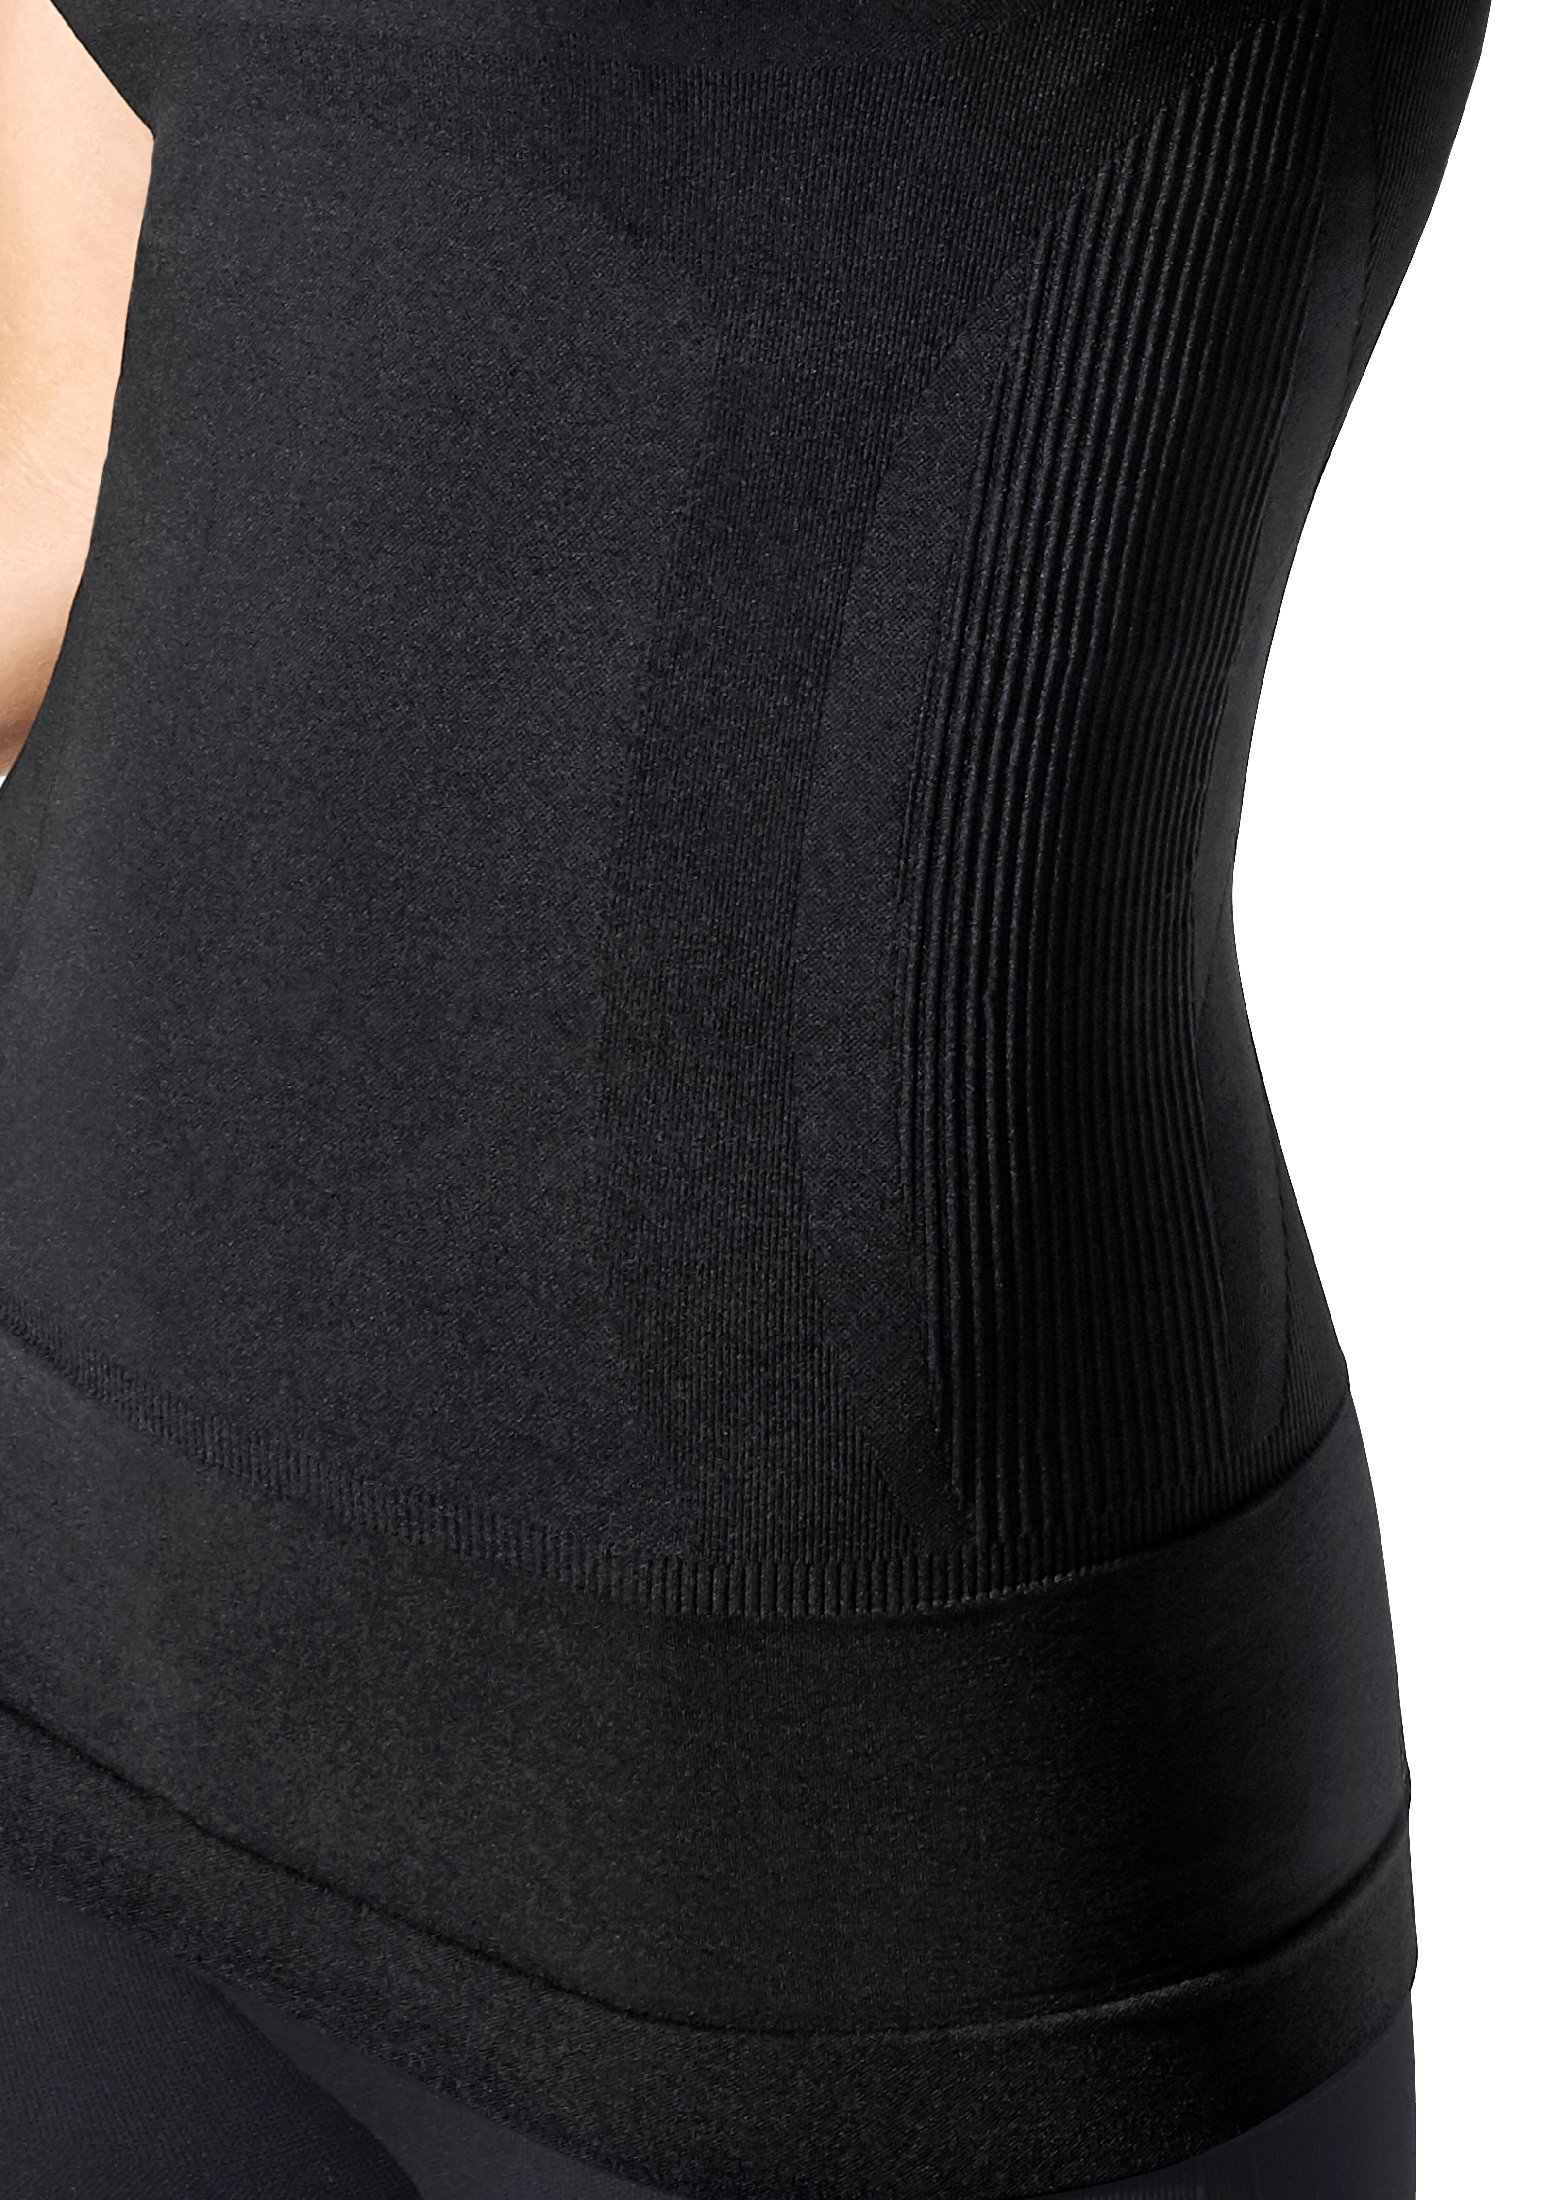 BLANQI Pull-Down Postpartum + Nursing Support Tanktop (Small, Deepest Black) by BLANQI (Image #5)